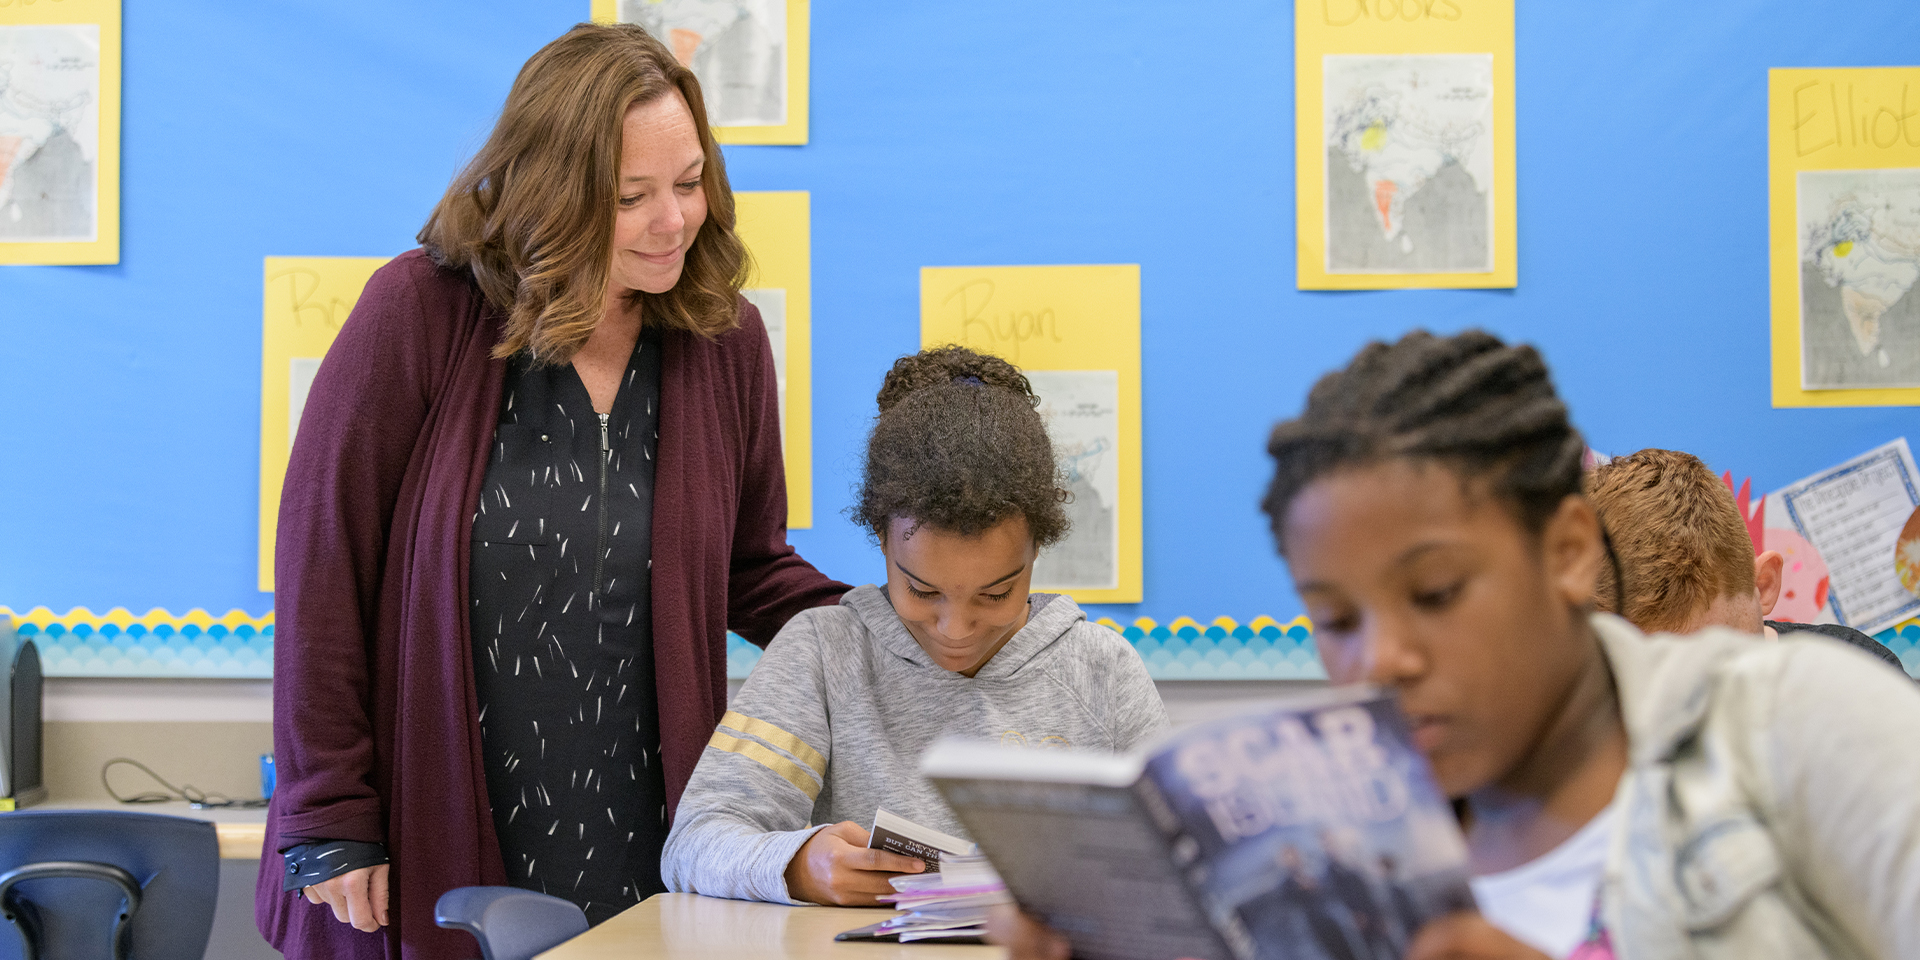 Teacher looks over student's shoulder as she reads book